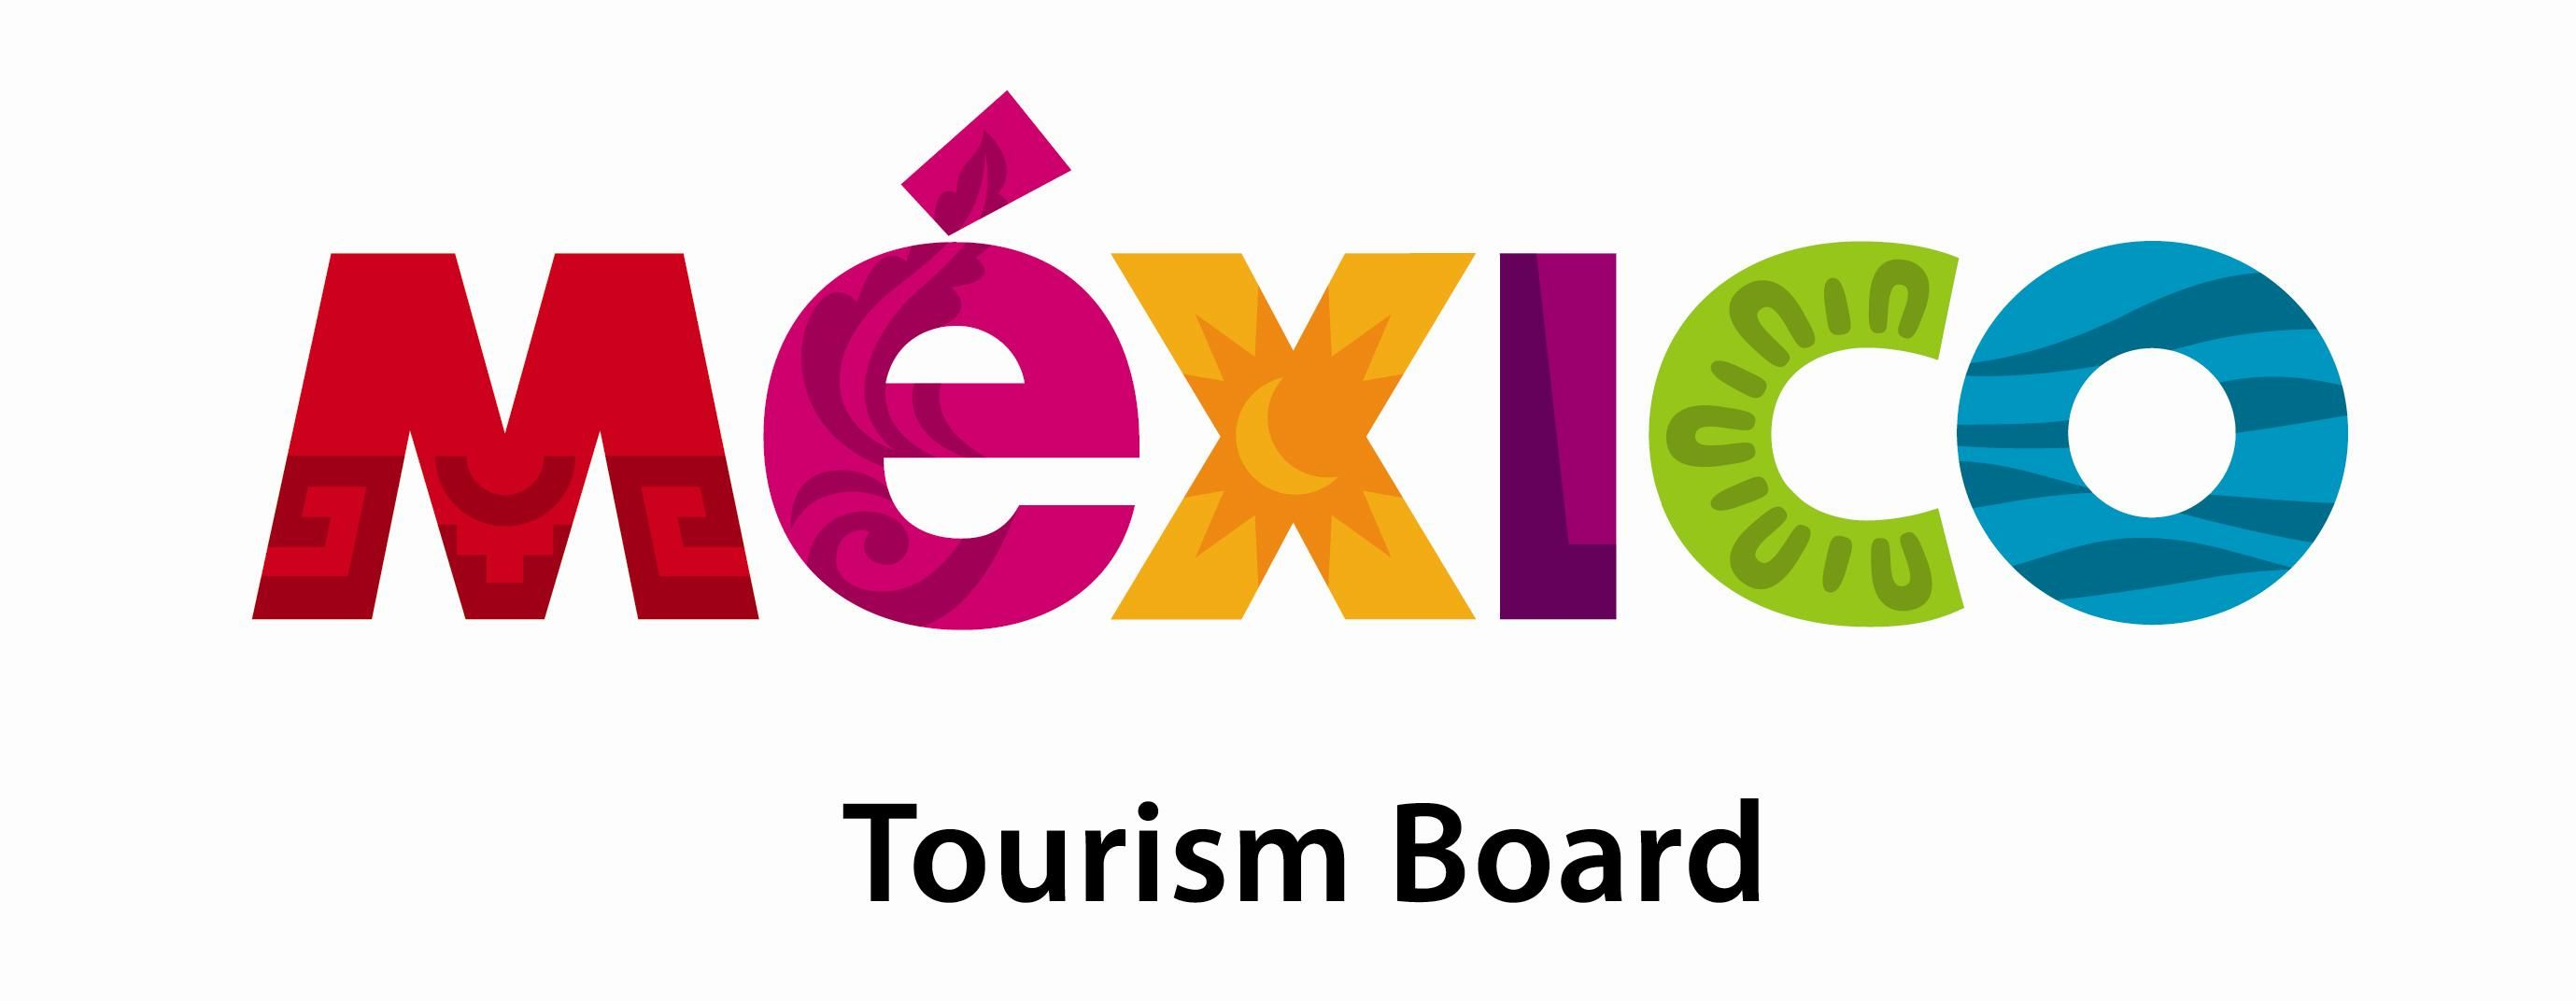 Mexico tourism board logo country branding guidelines for Mexican logos pictures